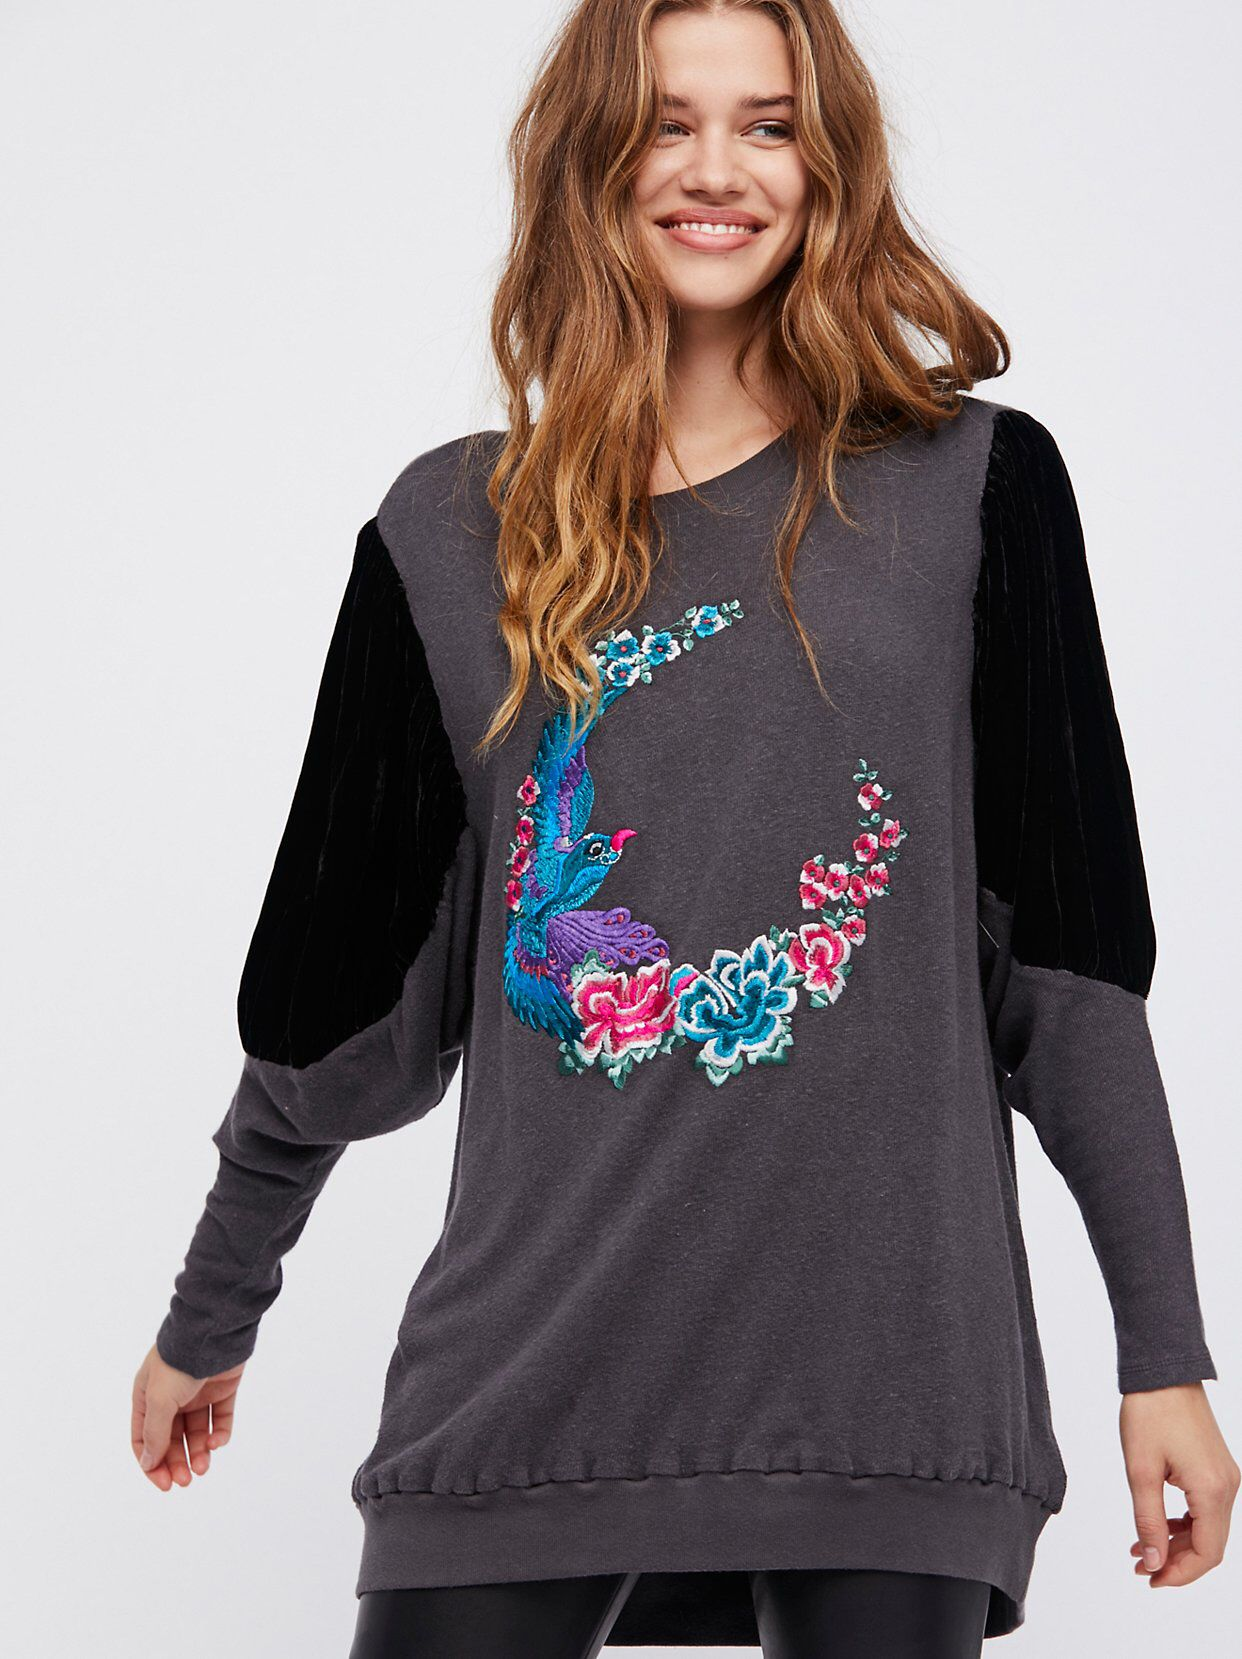 083b86938b0 Night Bird Tunic from Free People! Personas Libres, Bohemio, Aves, Noche,